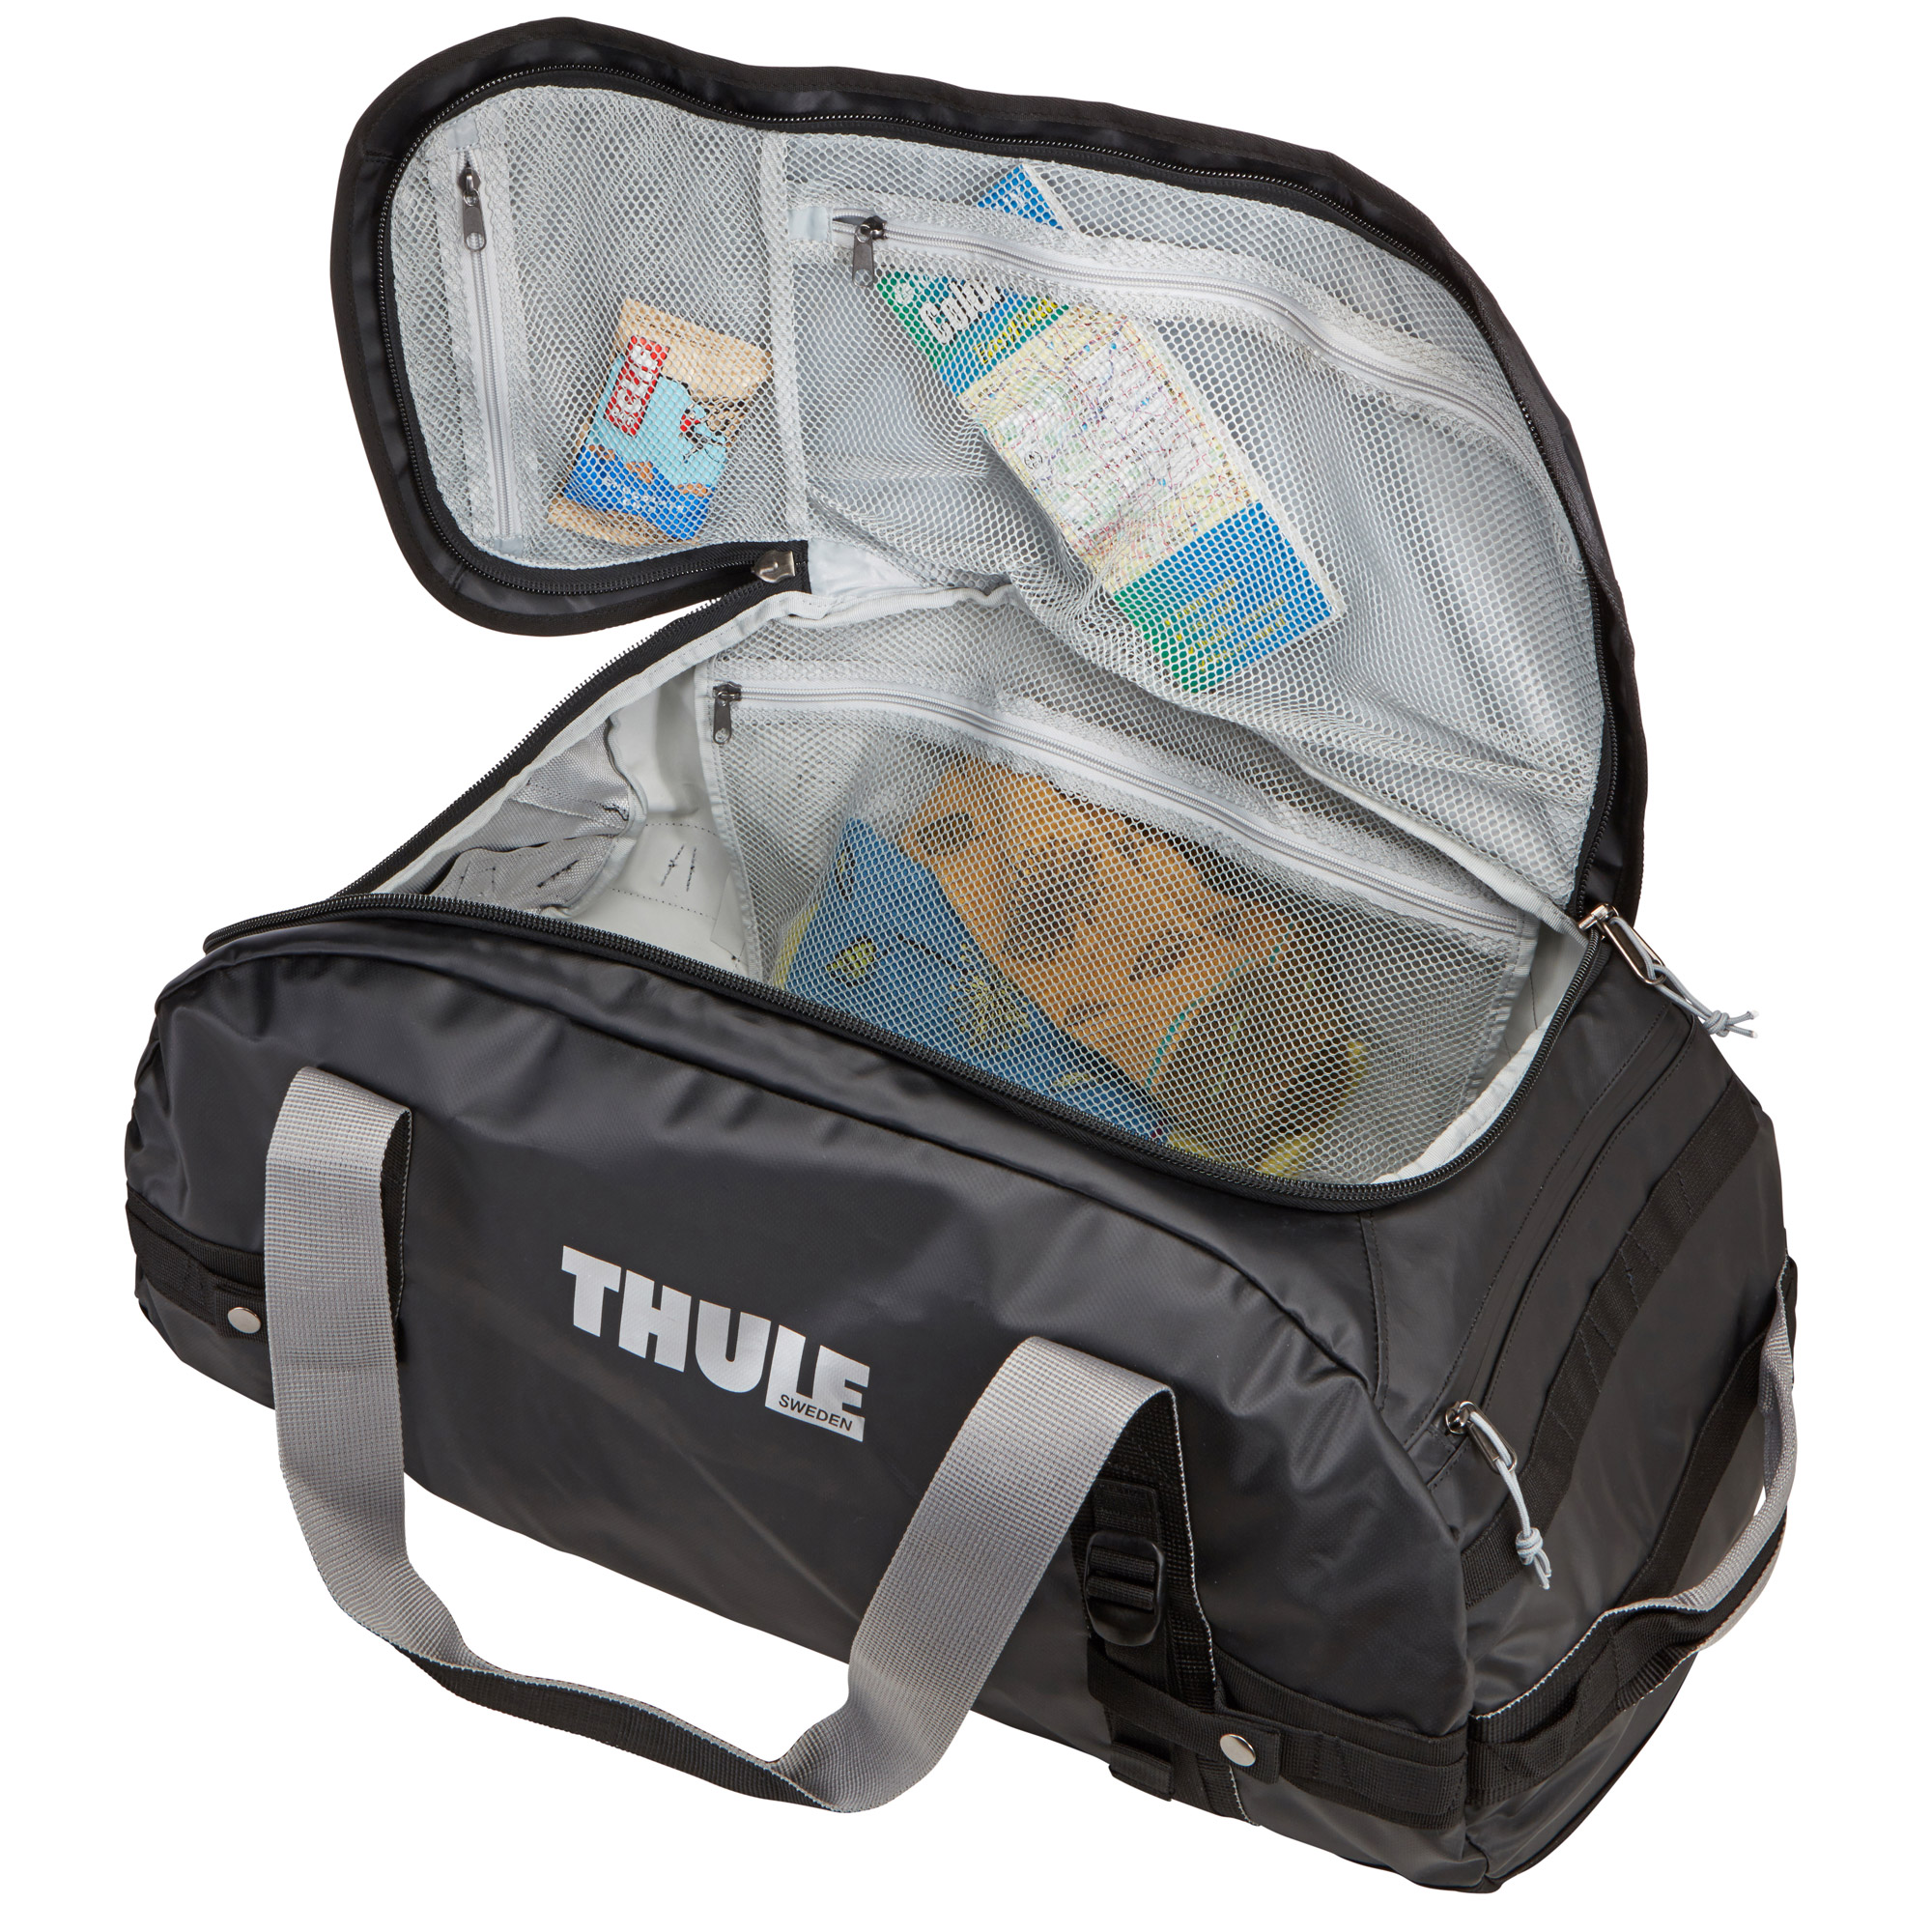 Thule Improves Chasm One Of Our Favorite Gear Bags Adds New Colors